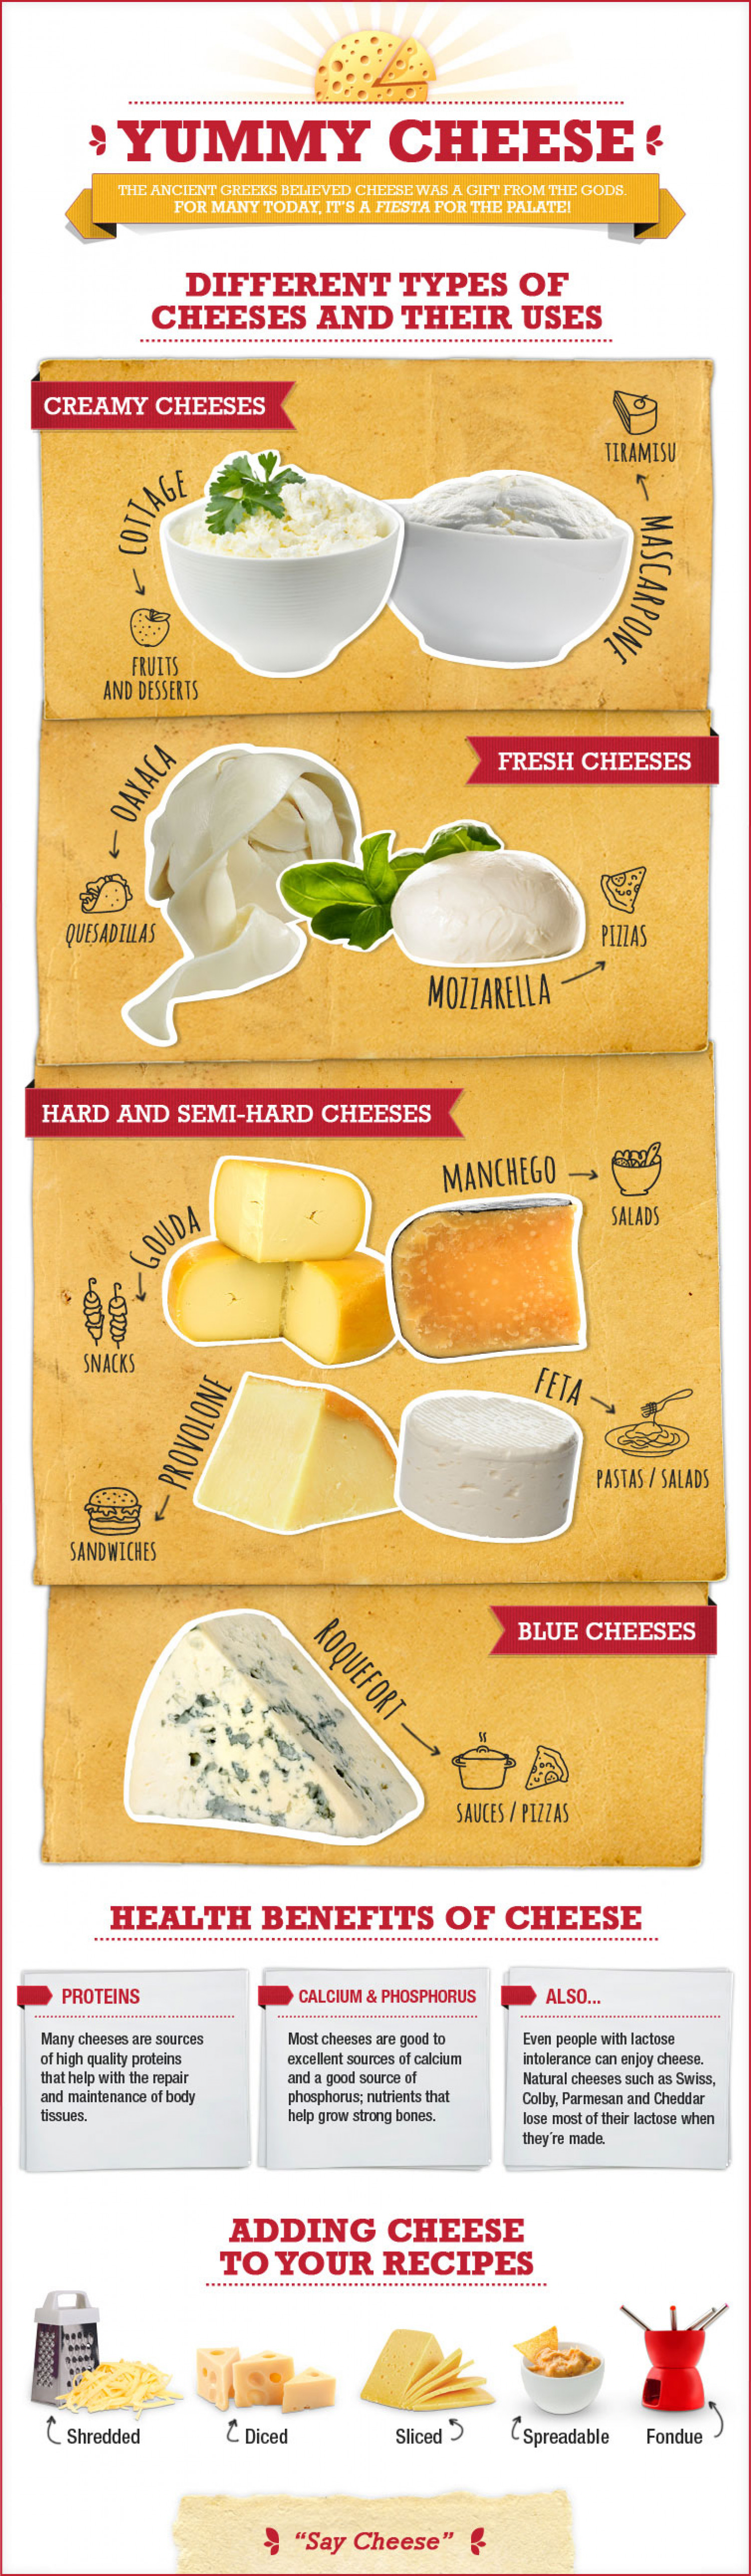 A Cheese Course the Basic Types and Uses of Cheese